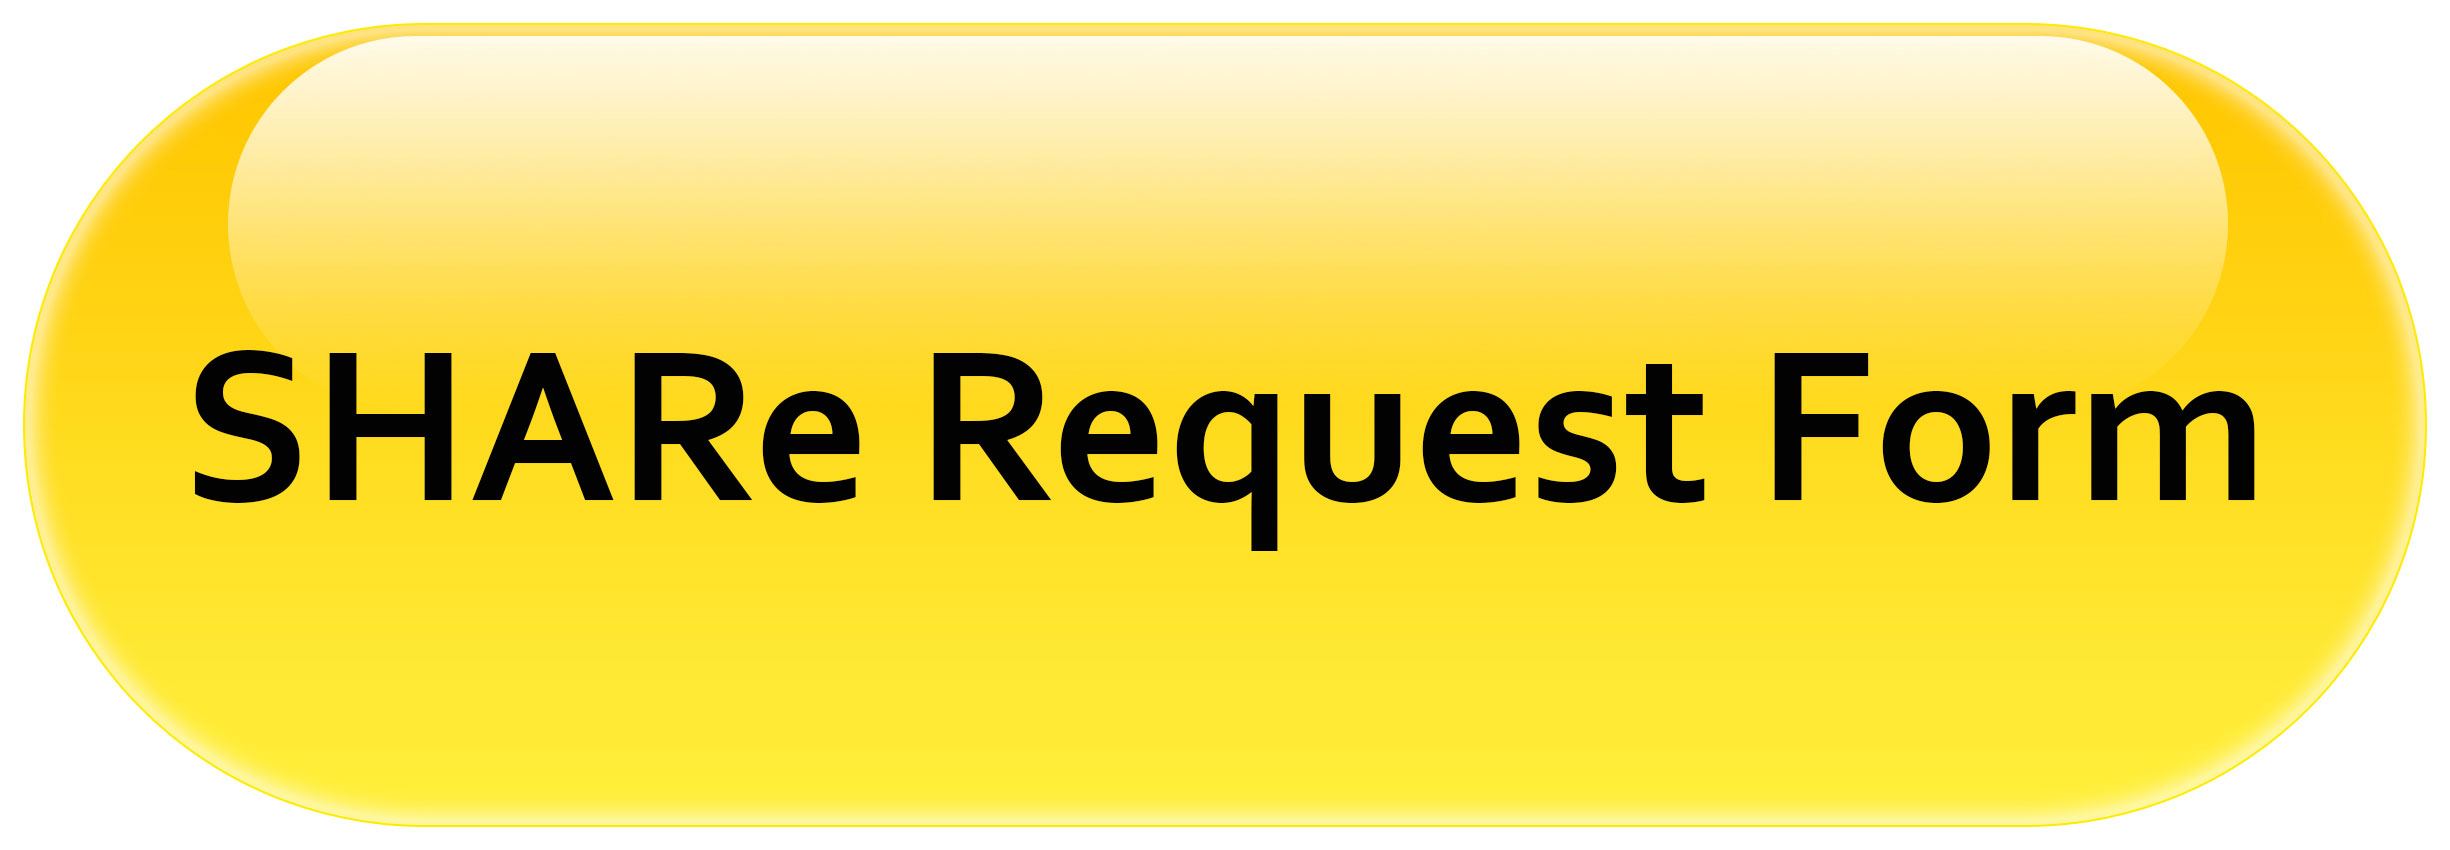 SHARe Request Form button